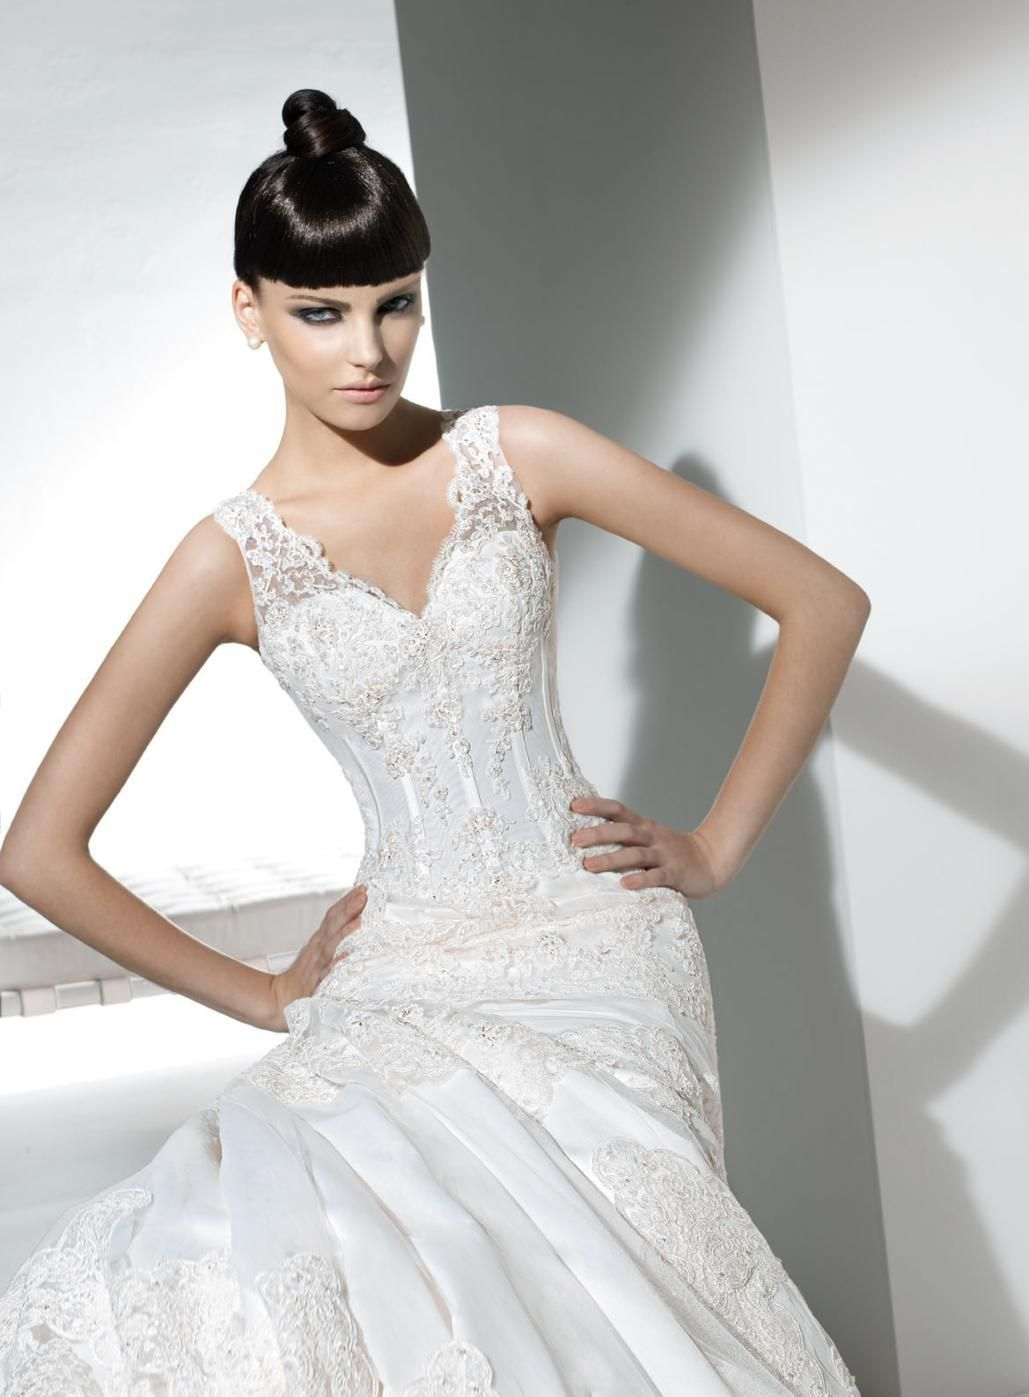 Pfx gowns bridal designers and fairytale weddings